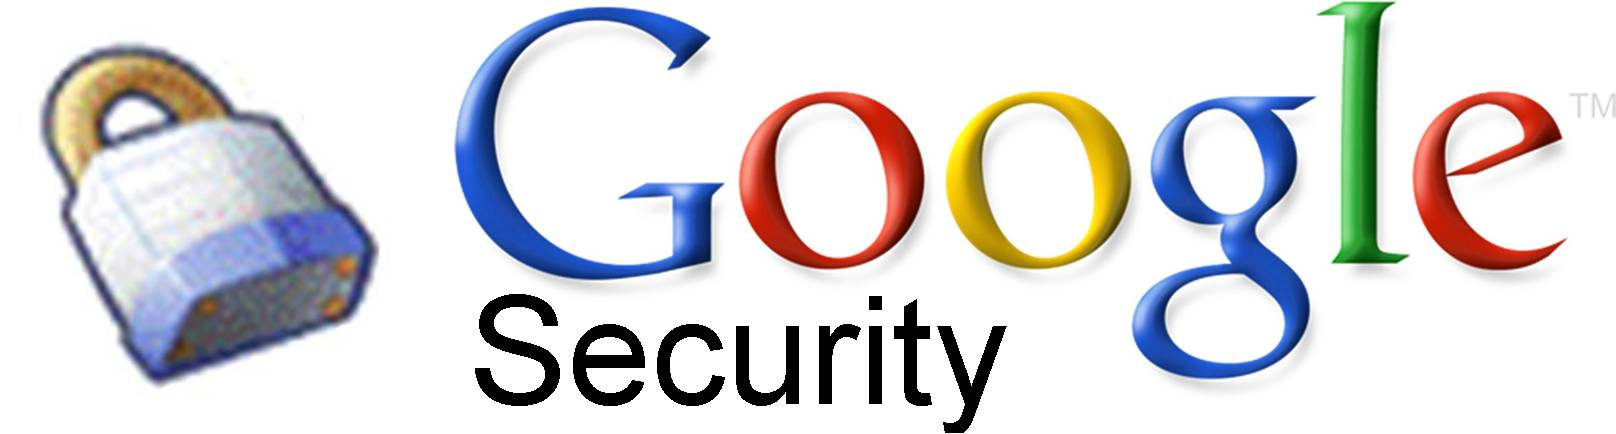 GoogleSecurity